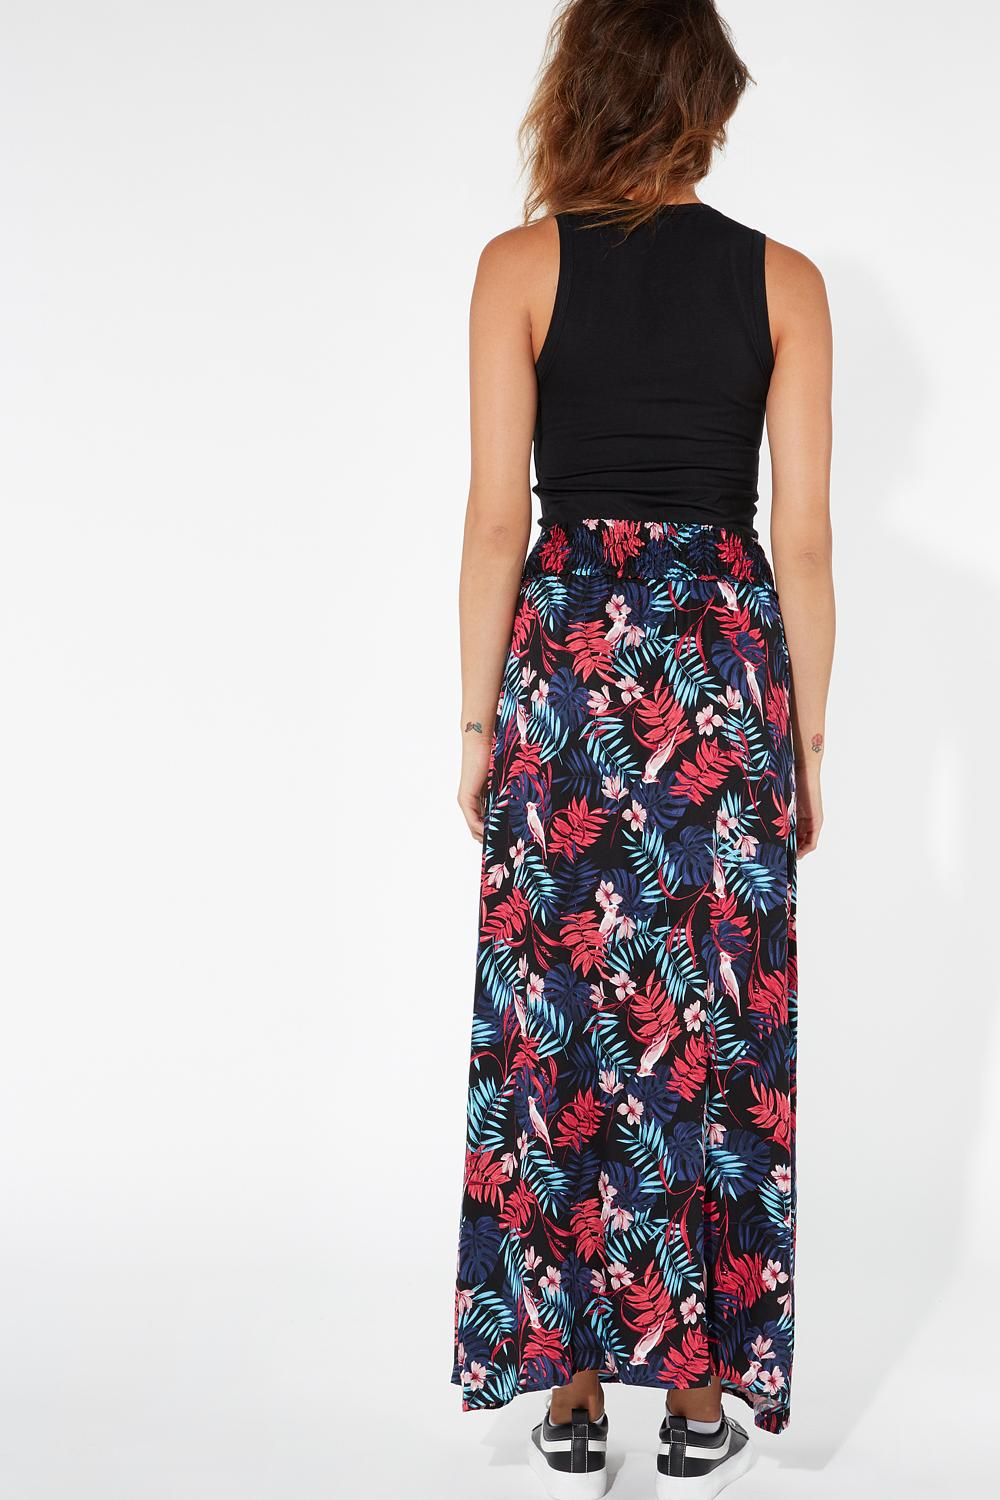 Long Deep Side Splits Skirt